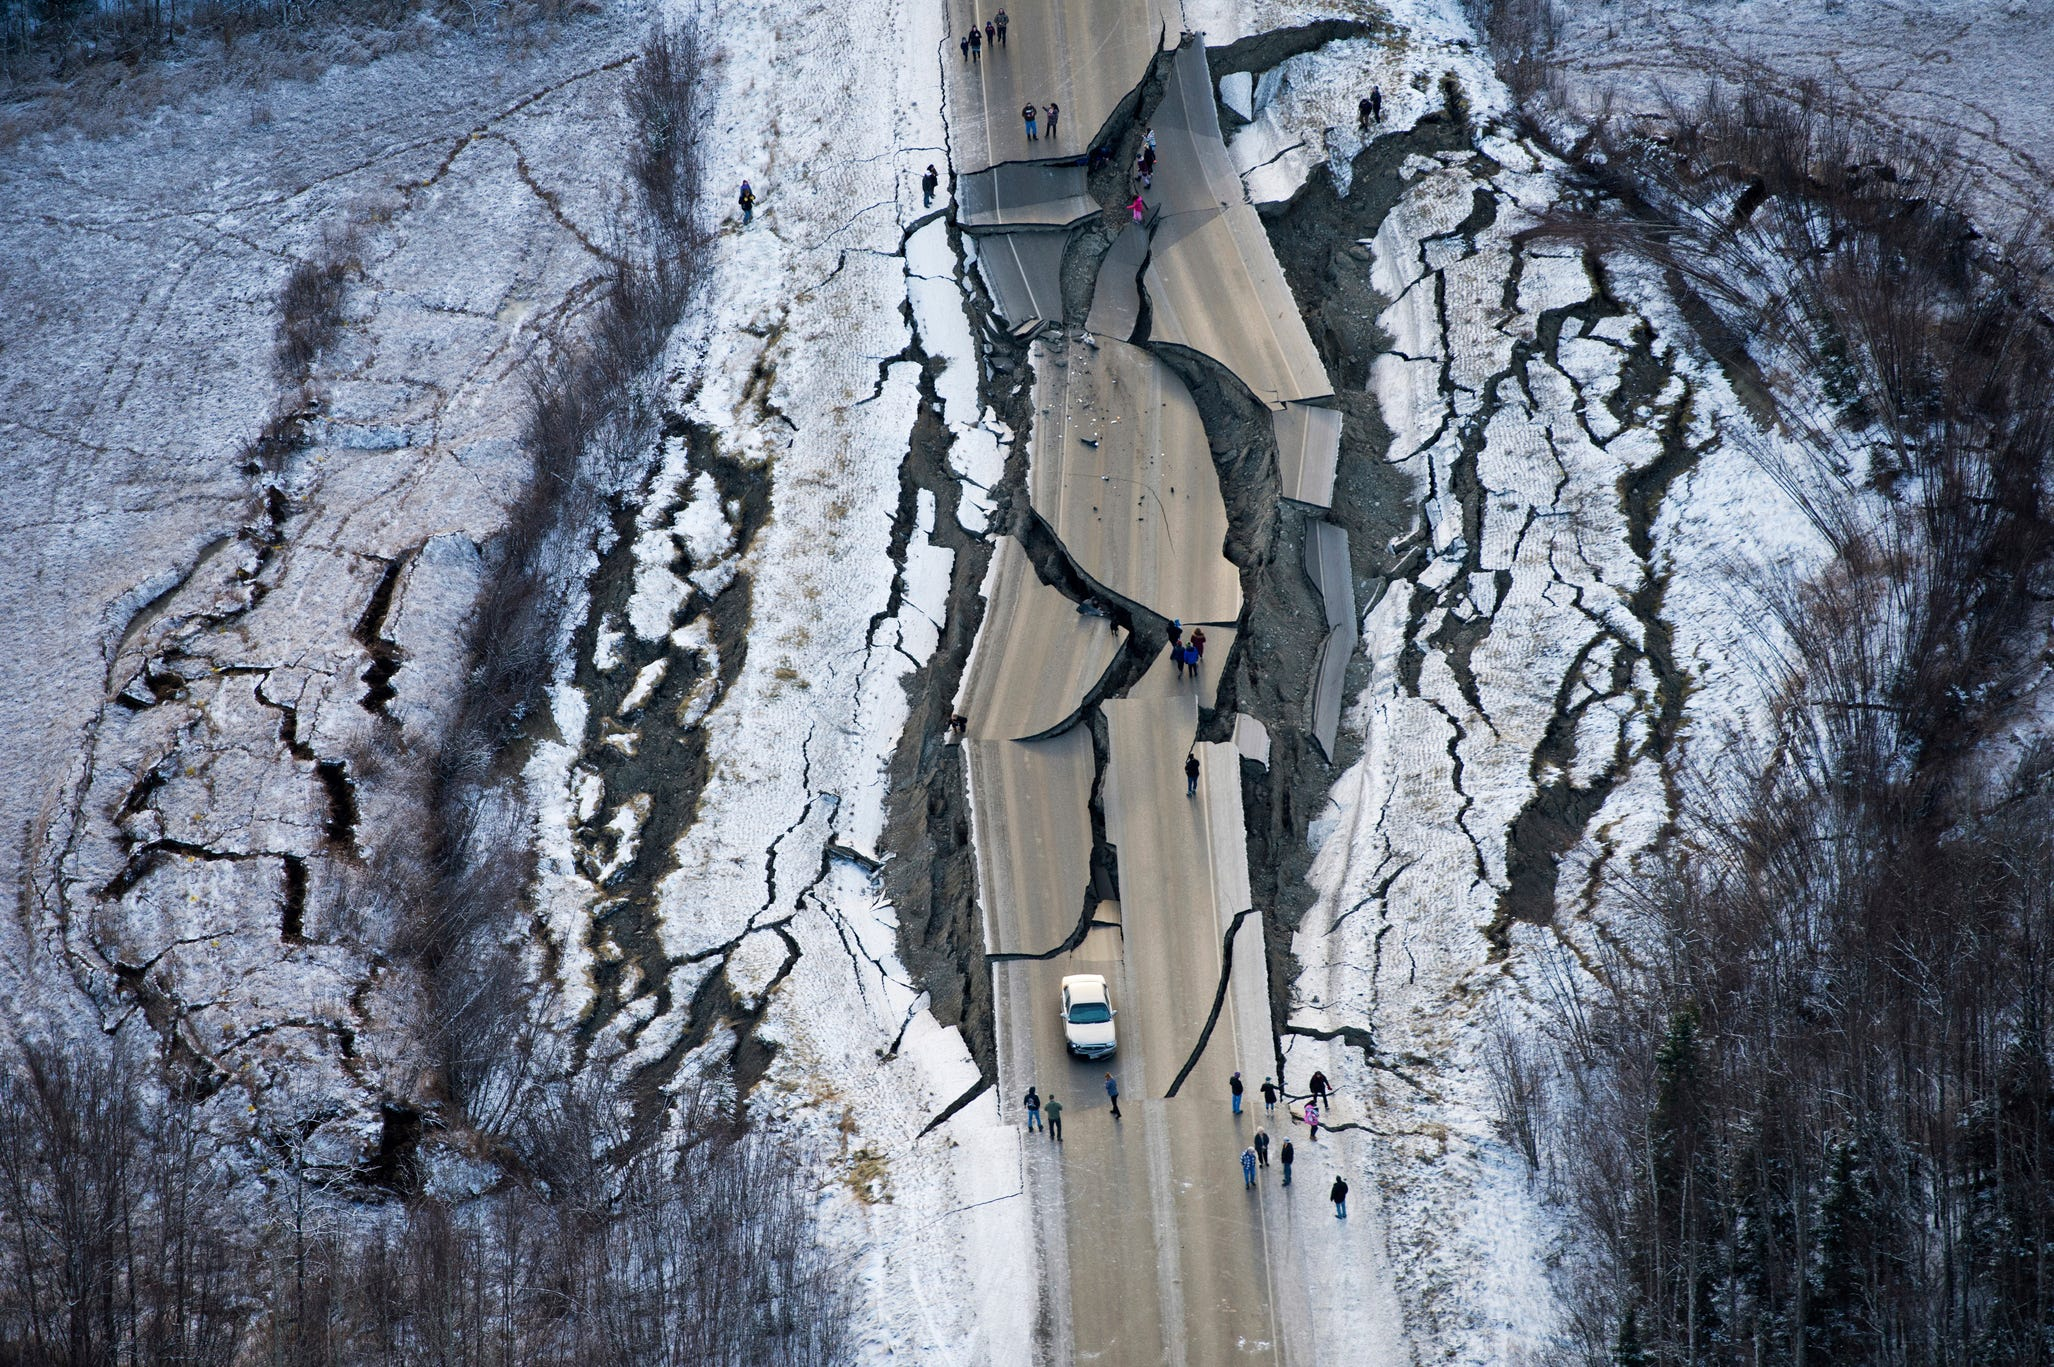 Alaska earthquake: Selfie-takers urged to stay away from crumbling road